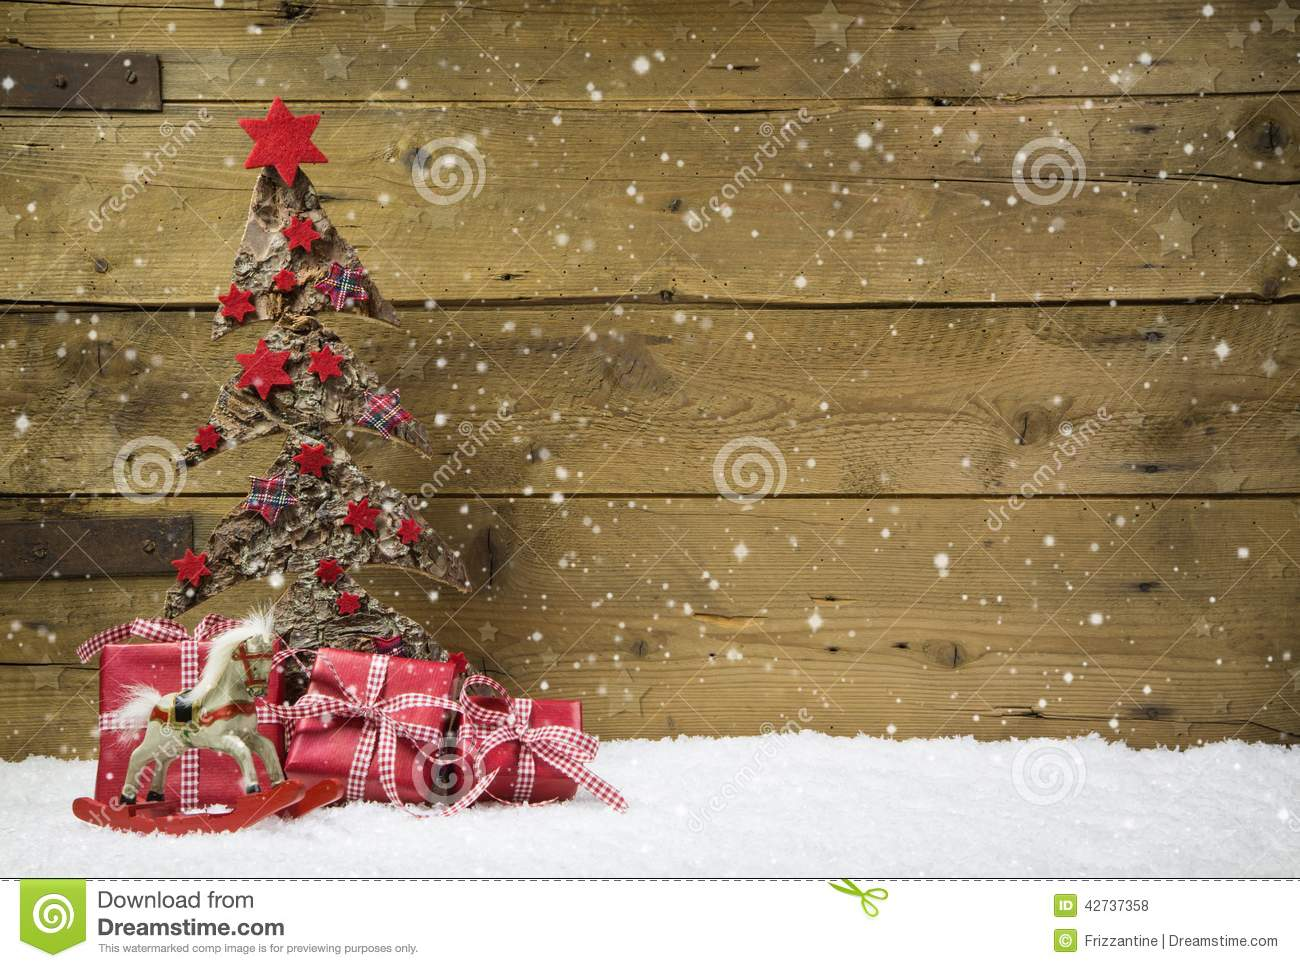 Postales Navidad Originales Christmas Tree With Red Presents And Snow On Wooden Snowy